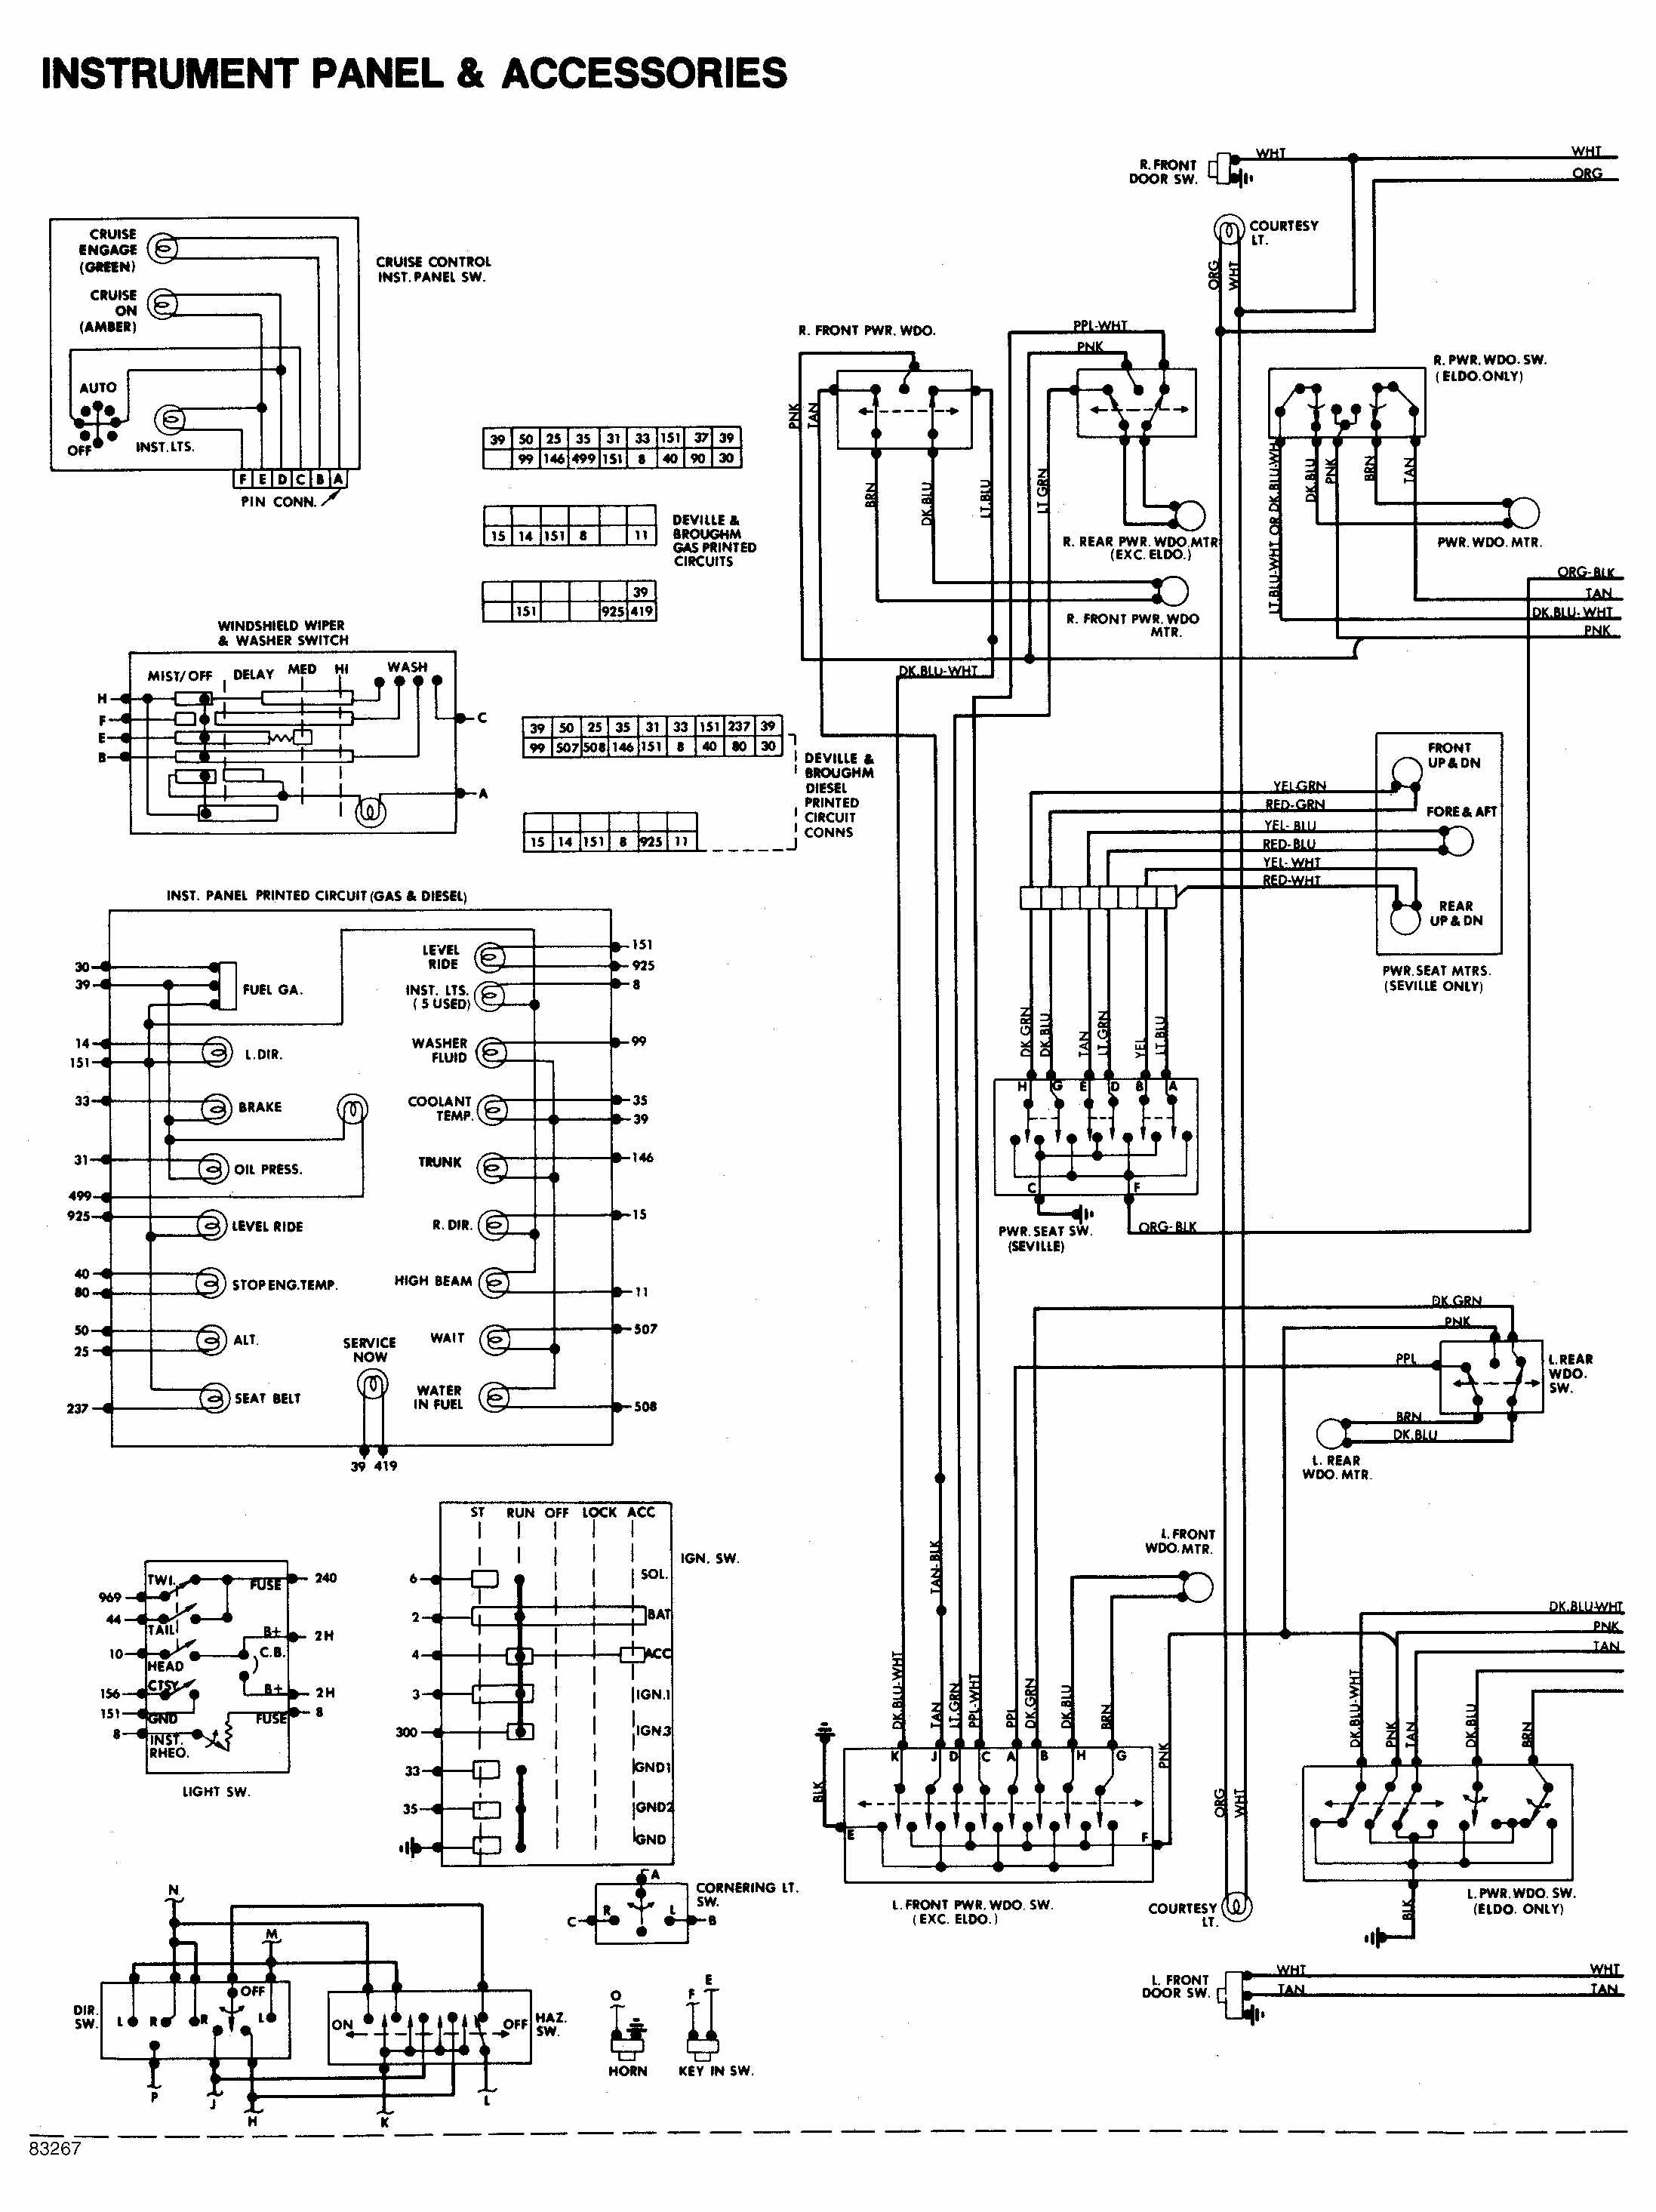 Nissan An Throttle Body Wiring Diagram likewise Index additionally Infiniti Wiring Diagrams likewise T7338859 Retrofit instrument cluster available together with Hid Relay Wiring Diagram Resistor. on g35 wiring harness diagram